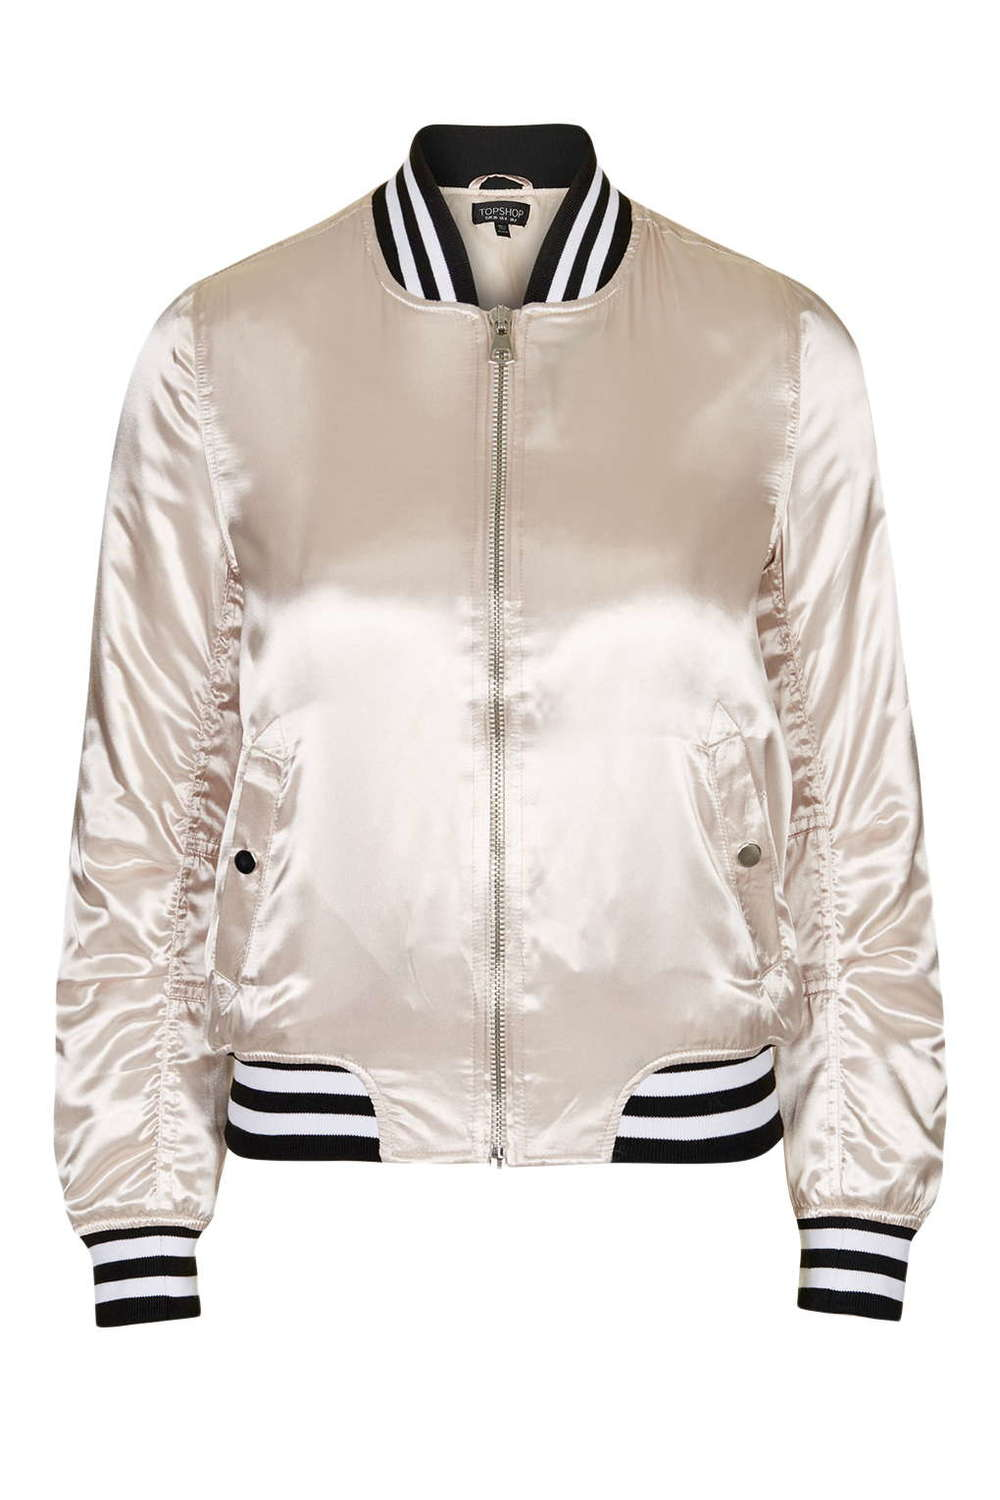 topshop sateen jacket.jpg